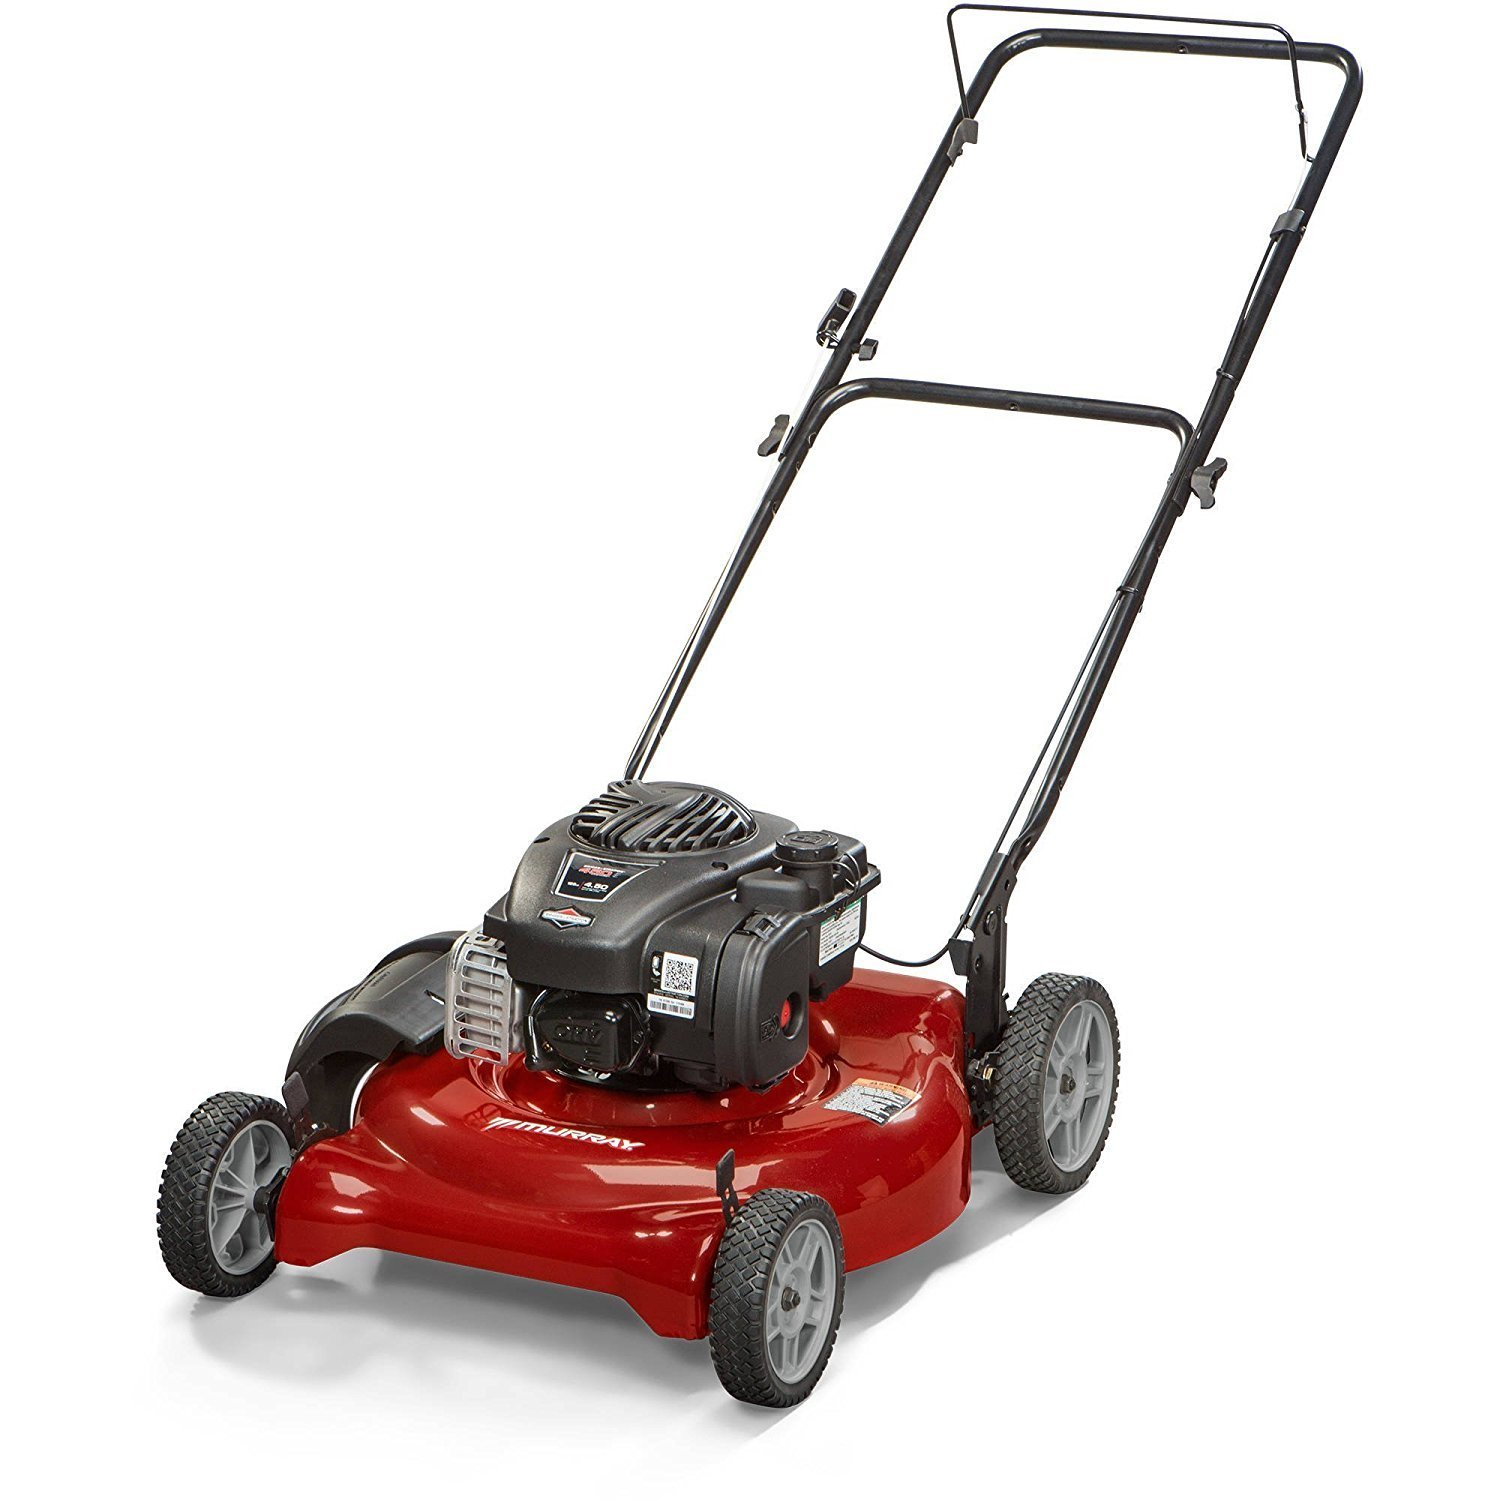 22 Inch Murray Mower Parts : Murray self propelled lawn mower home furniture design